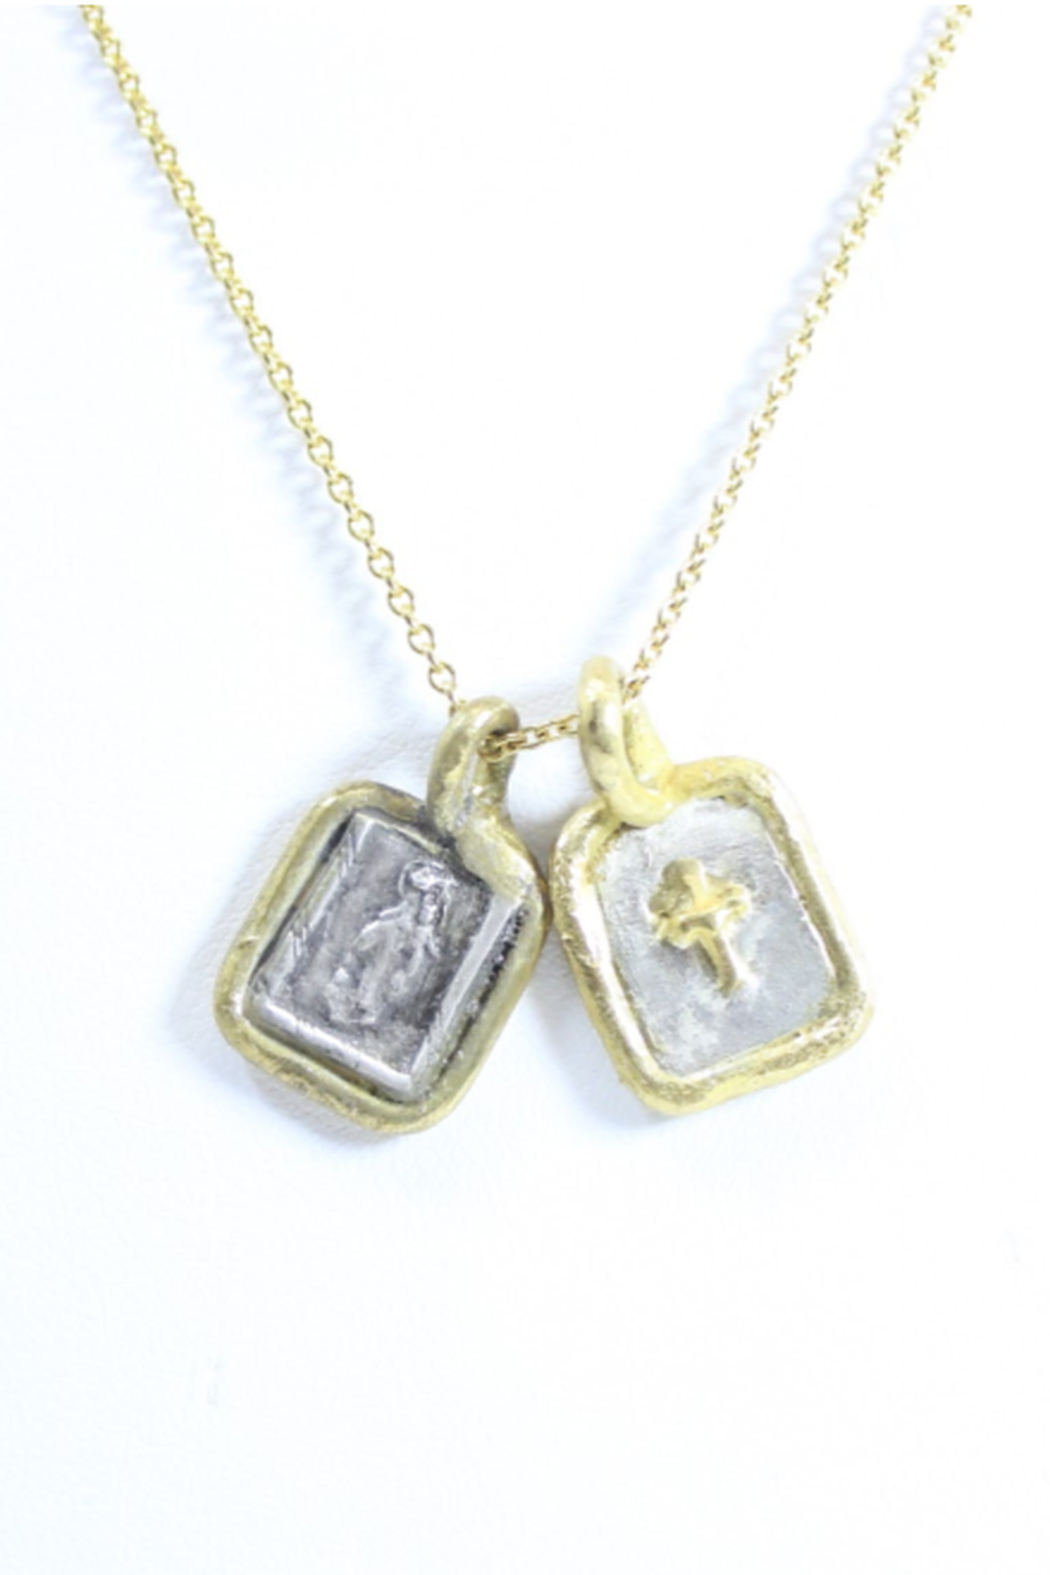 The Birds Nest SCAPULAR NECKLACE - 17 INCH CHAIN - Main Image